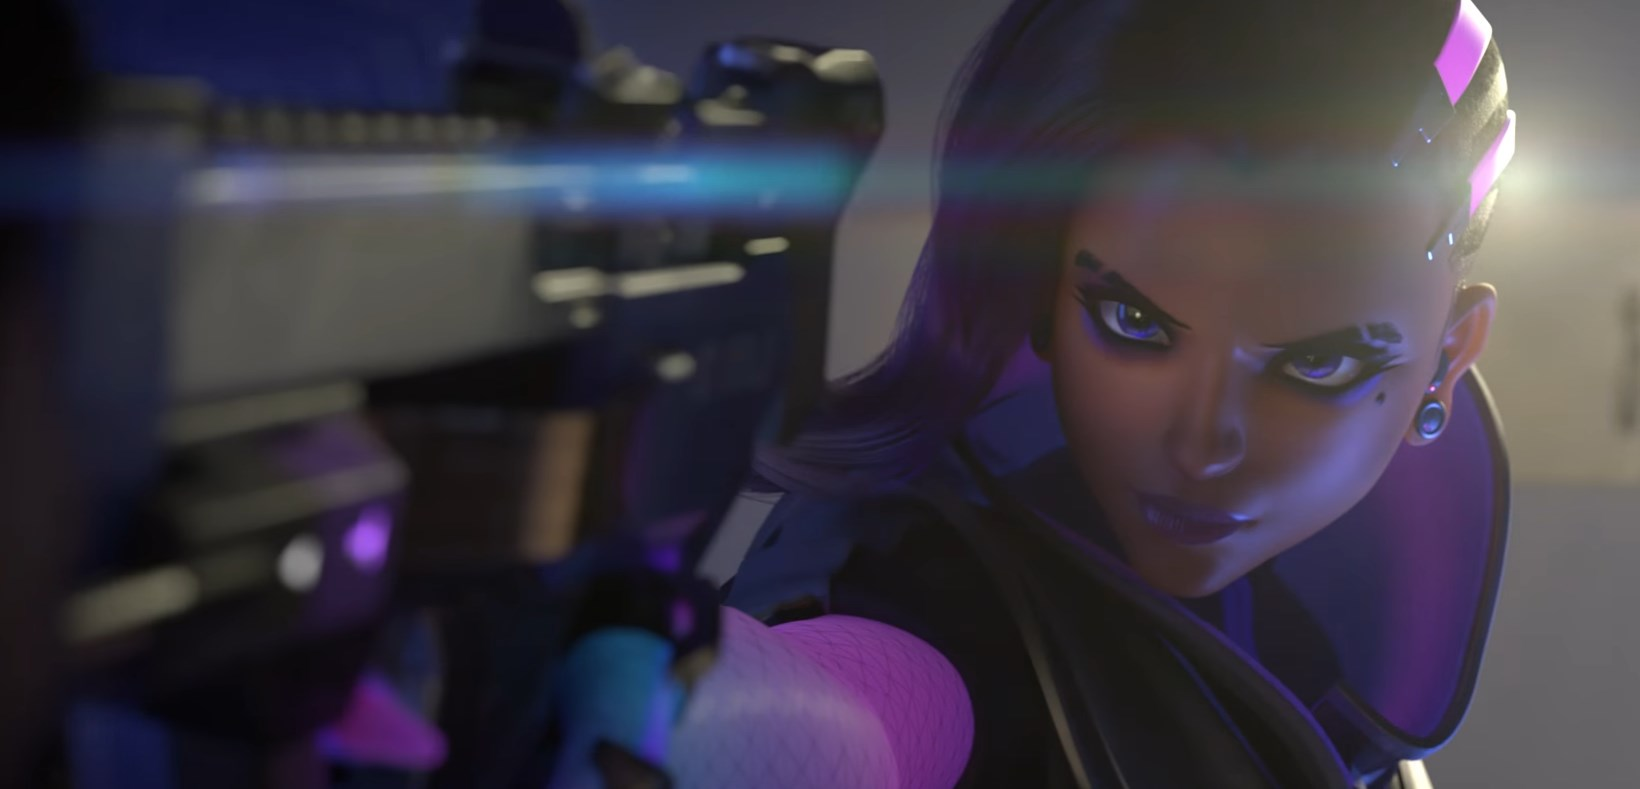 Sombra Abilities Overview in Overwatch